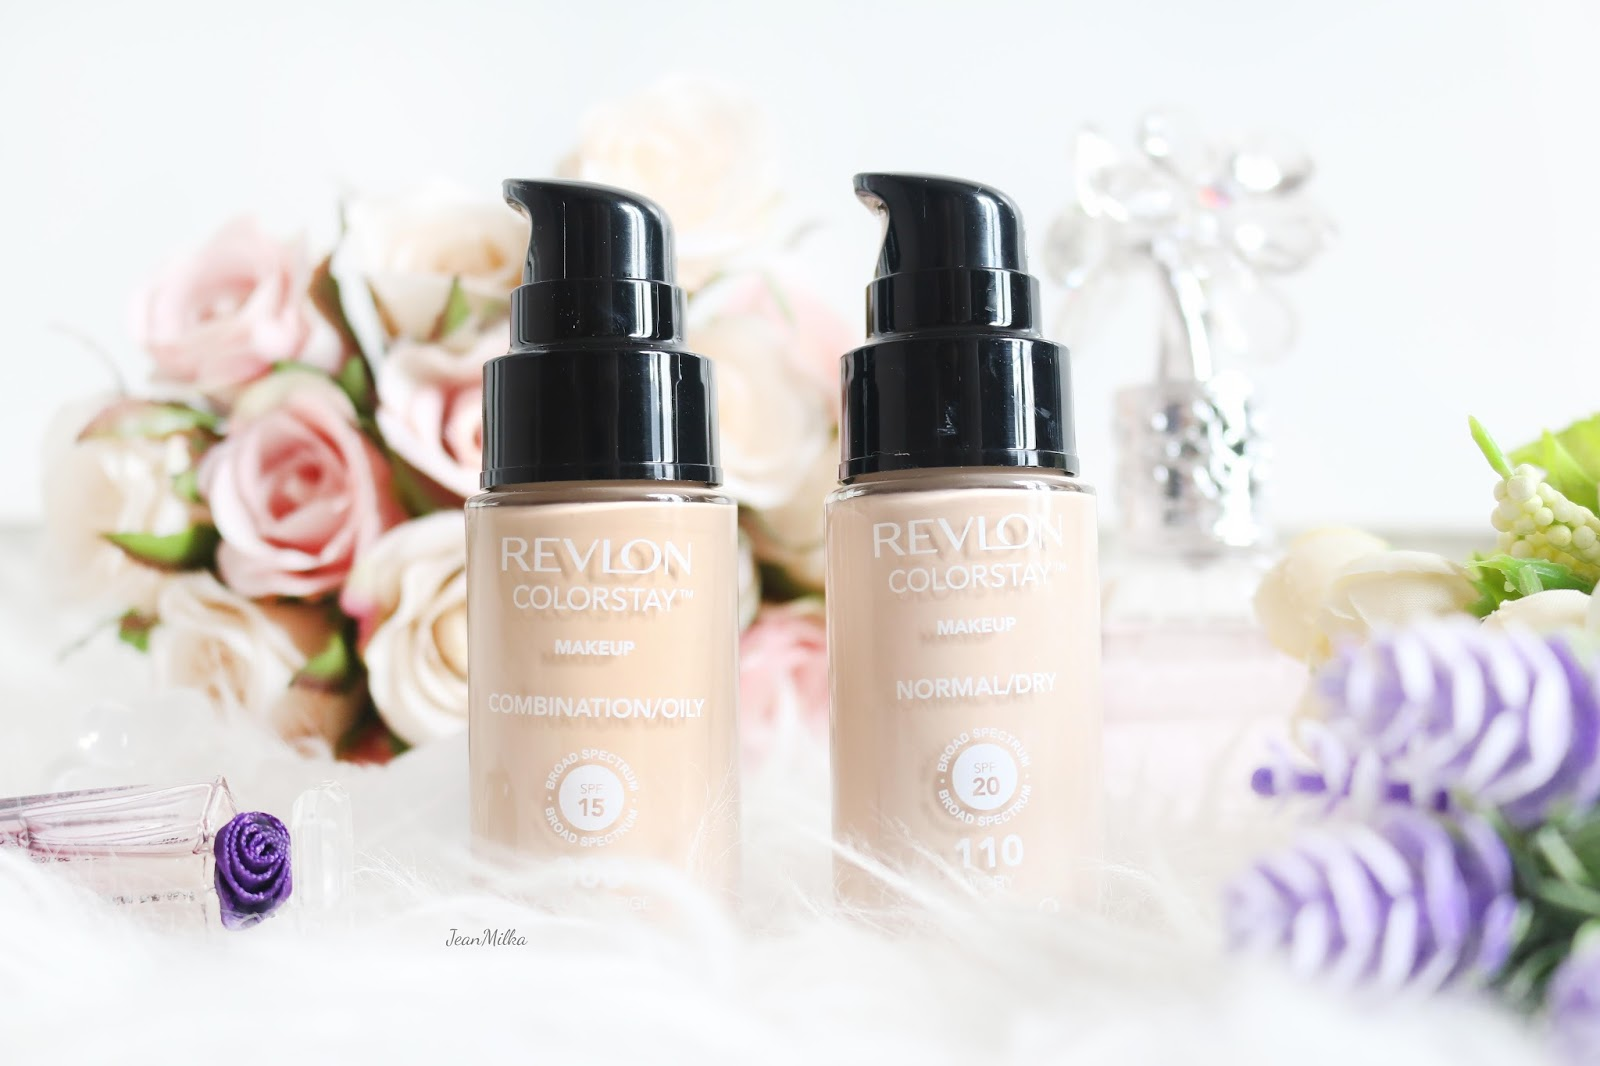 september favorites, beauty favorites, jean milka faves, jean milka, makeup, beauty, skincare, beauty blog, favorites, revlon colorstay, revlon, revlon foundation, best drugstore foundation